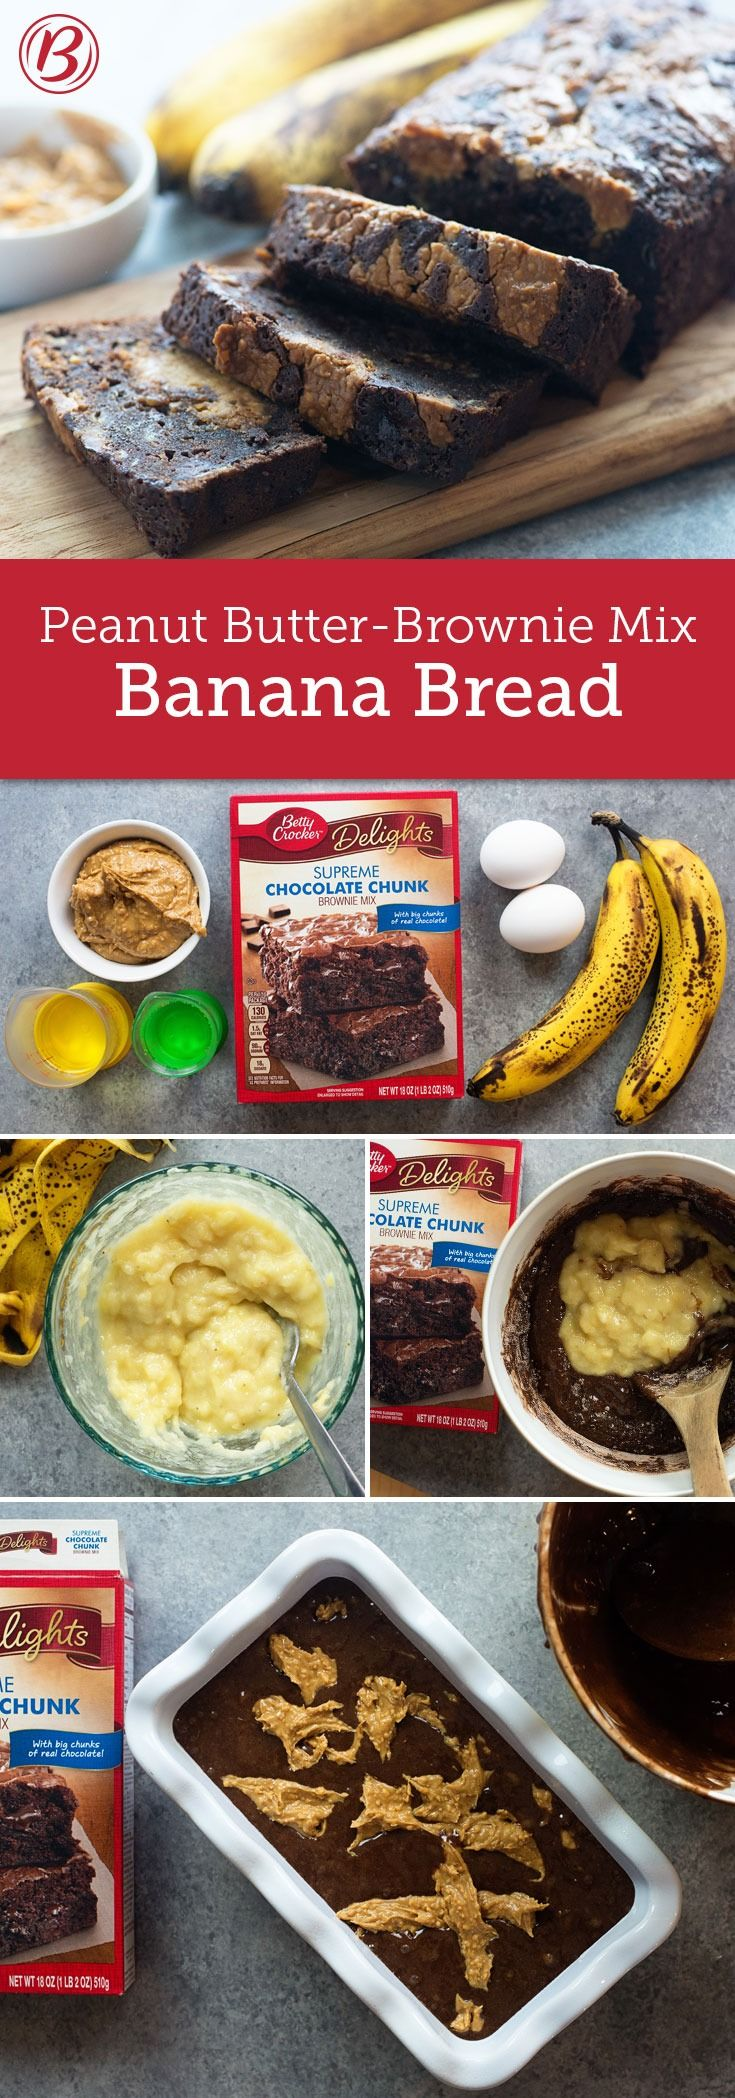 Banana bread is made even better with a fudgy brownie base and a thick swirl of peanut butter.  Soften peanut butter in microwavable bowl in microwave 15 seconds to make it easier to swirl into batter.